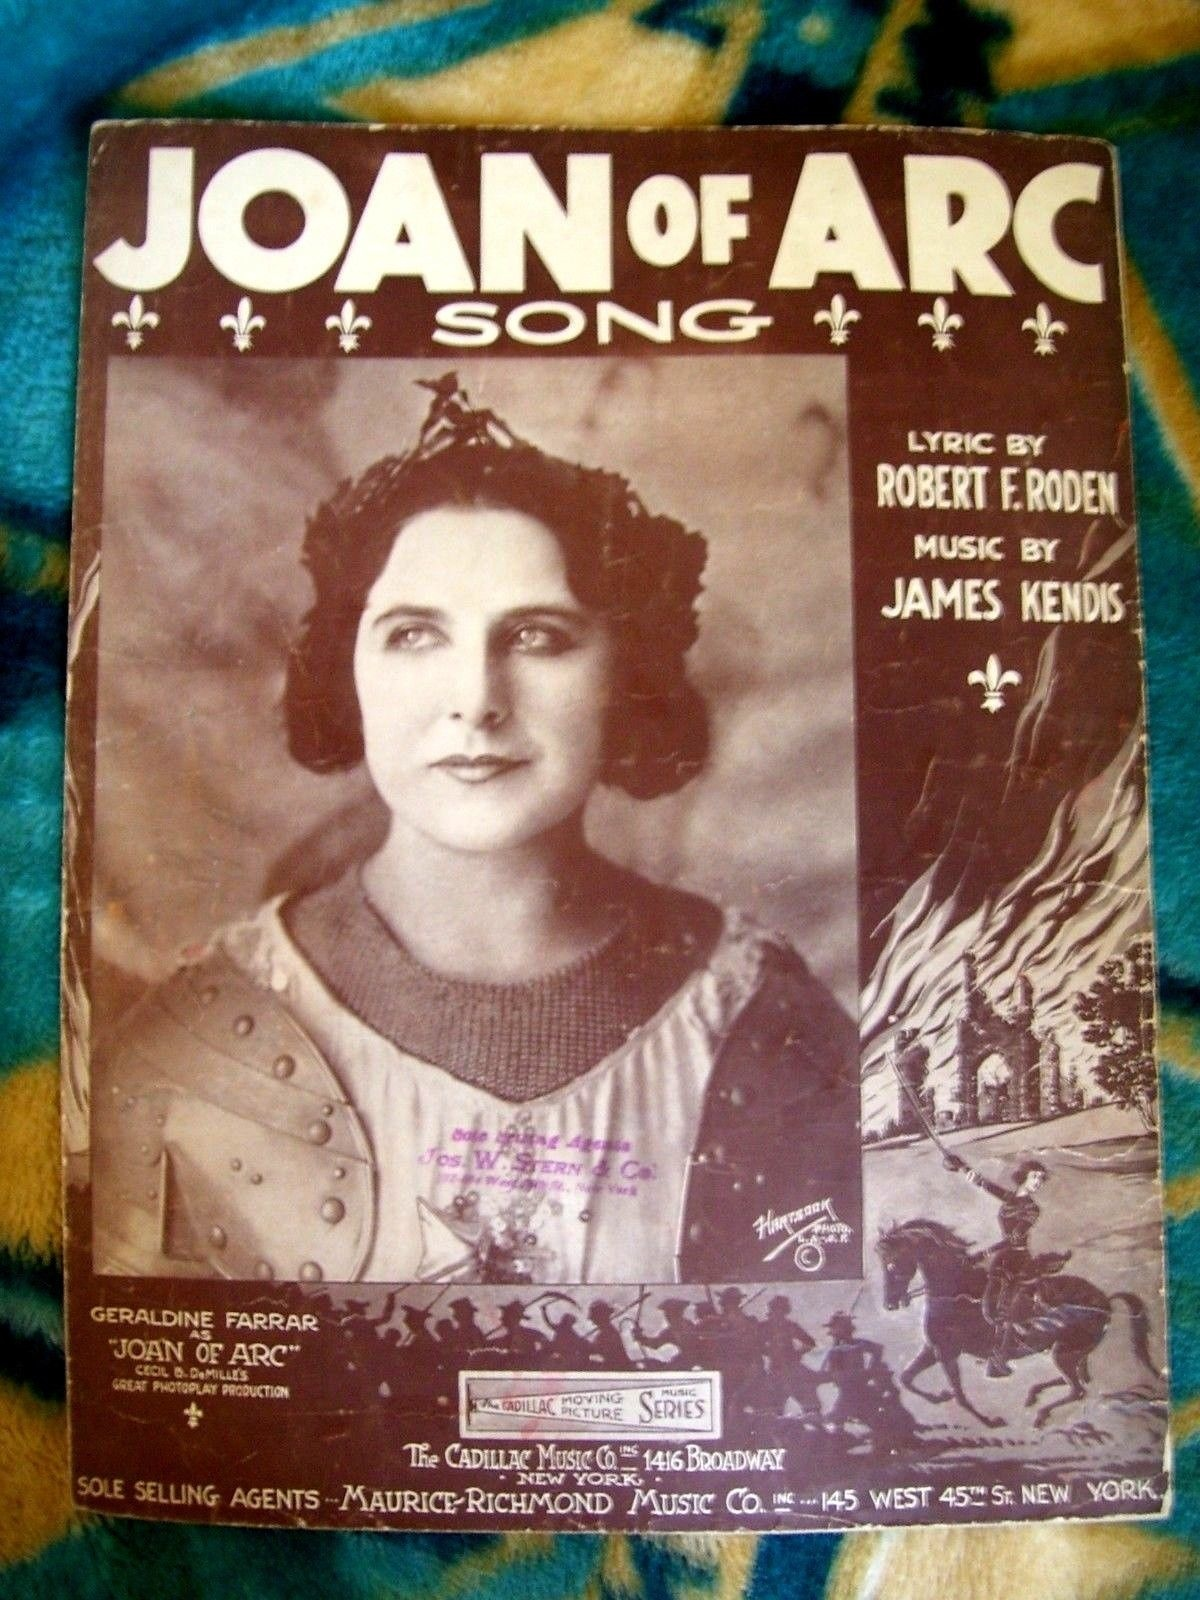 RARE MOVIE MUSIC SHEET MUSIC | Collectors Weekly